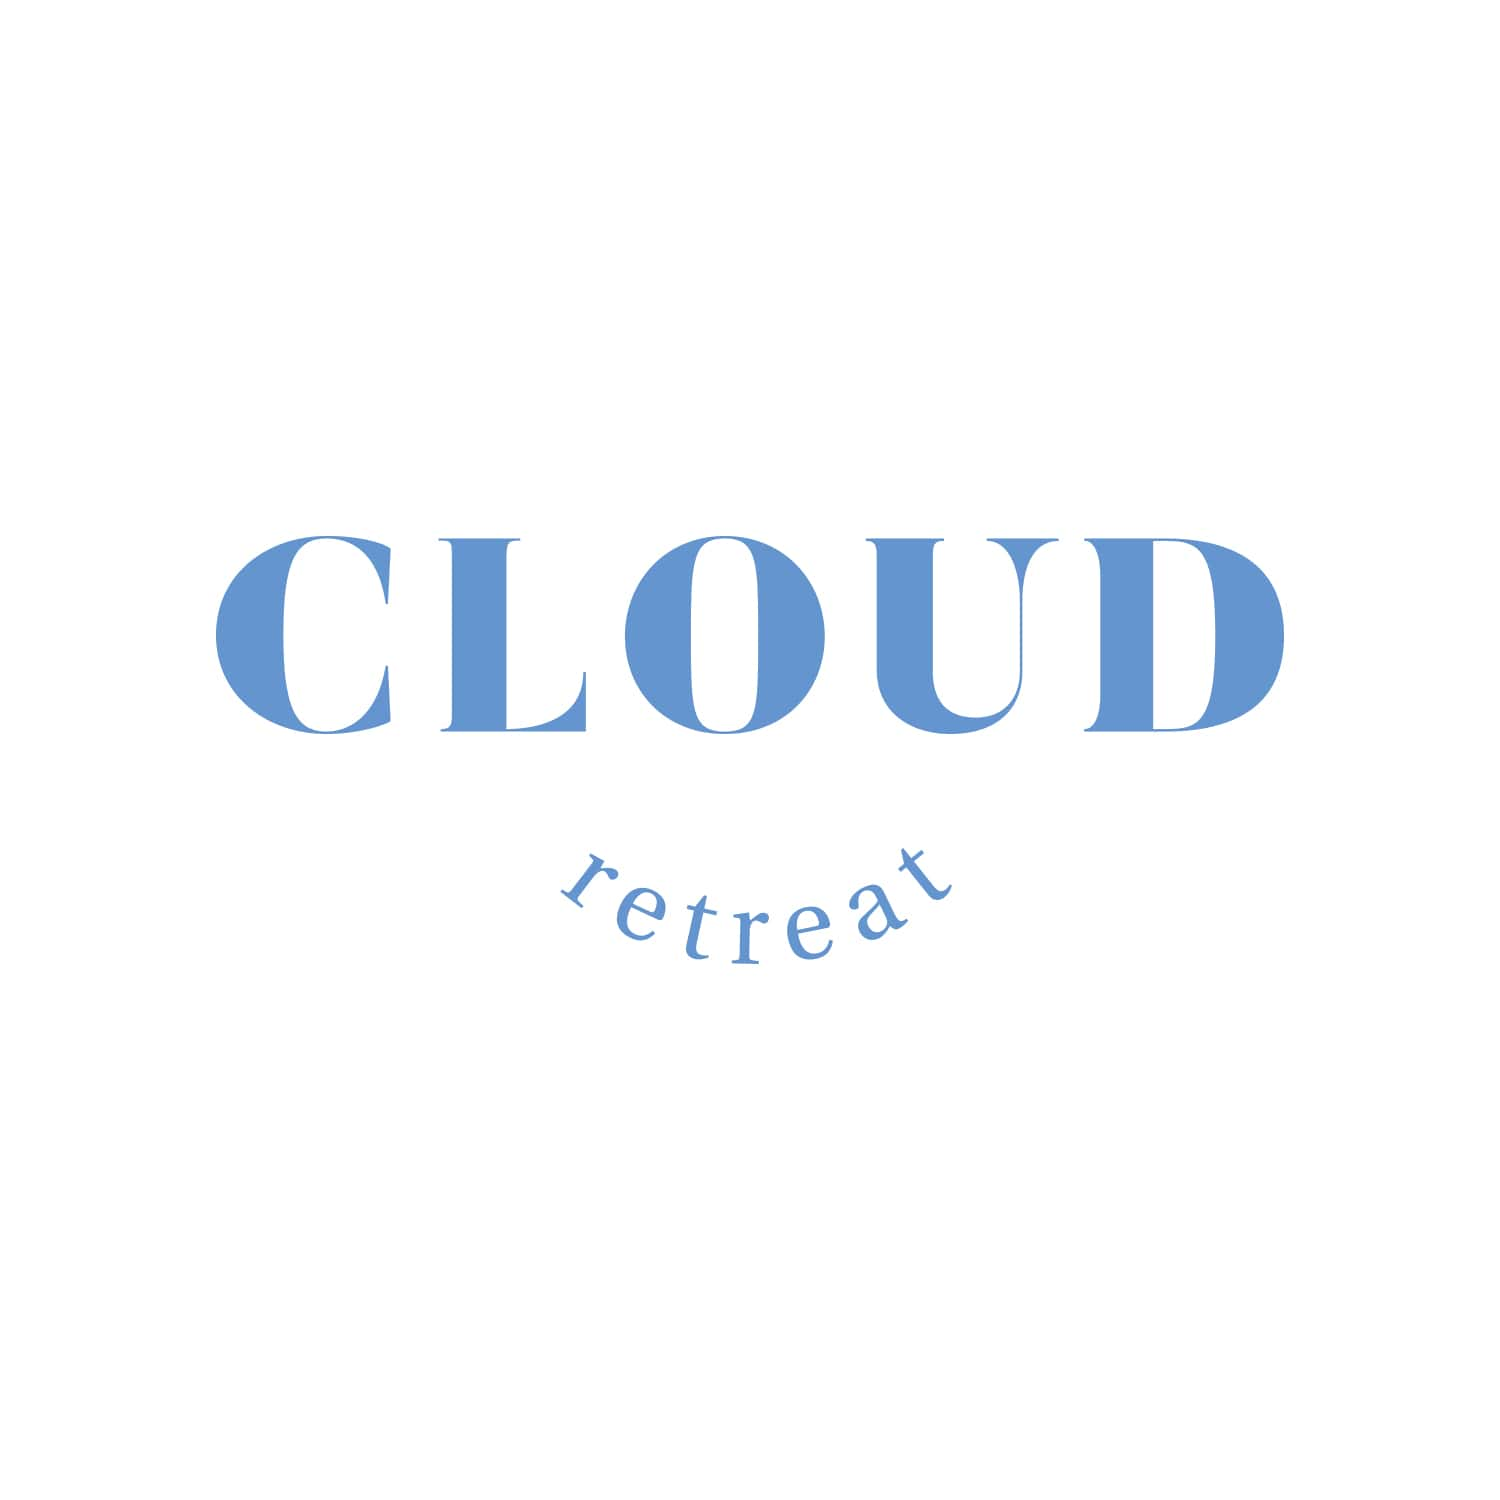 Cloud Retreat Logo Design_Copyright Tiny Crowd